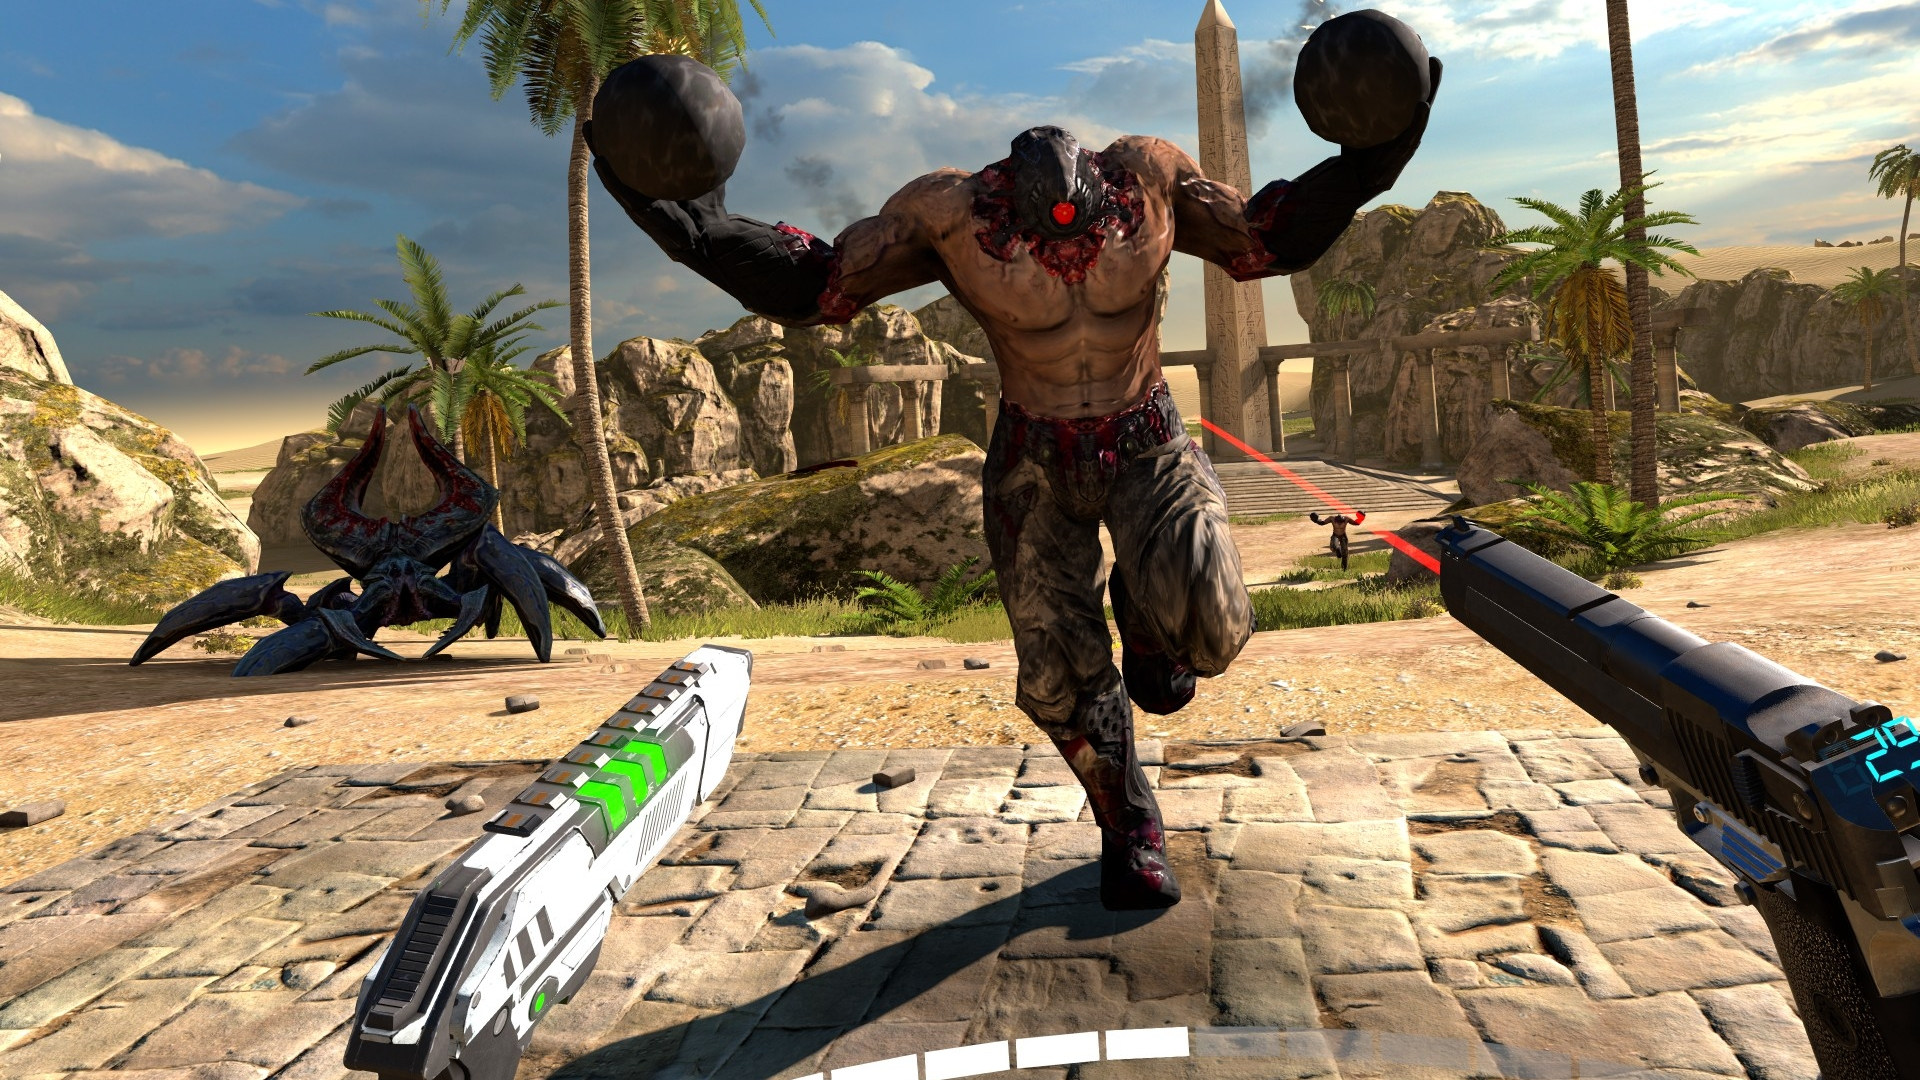 VRゲーム,Serious Sam VR: The Last Hope,イメージ